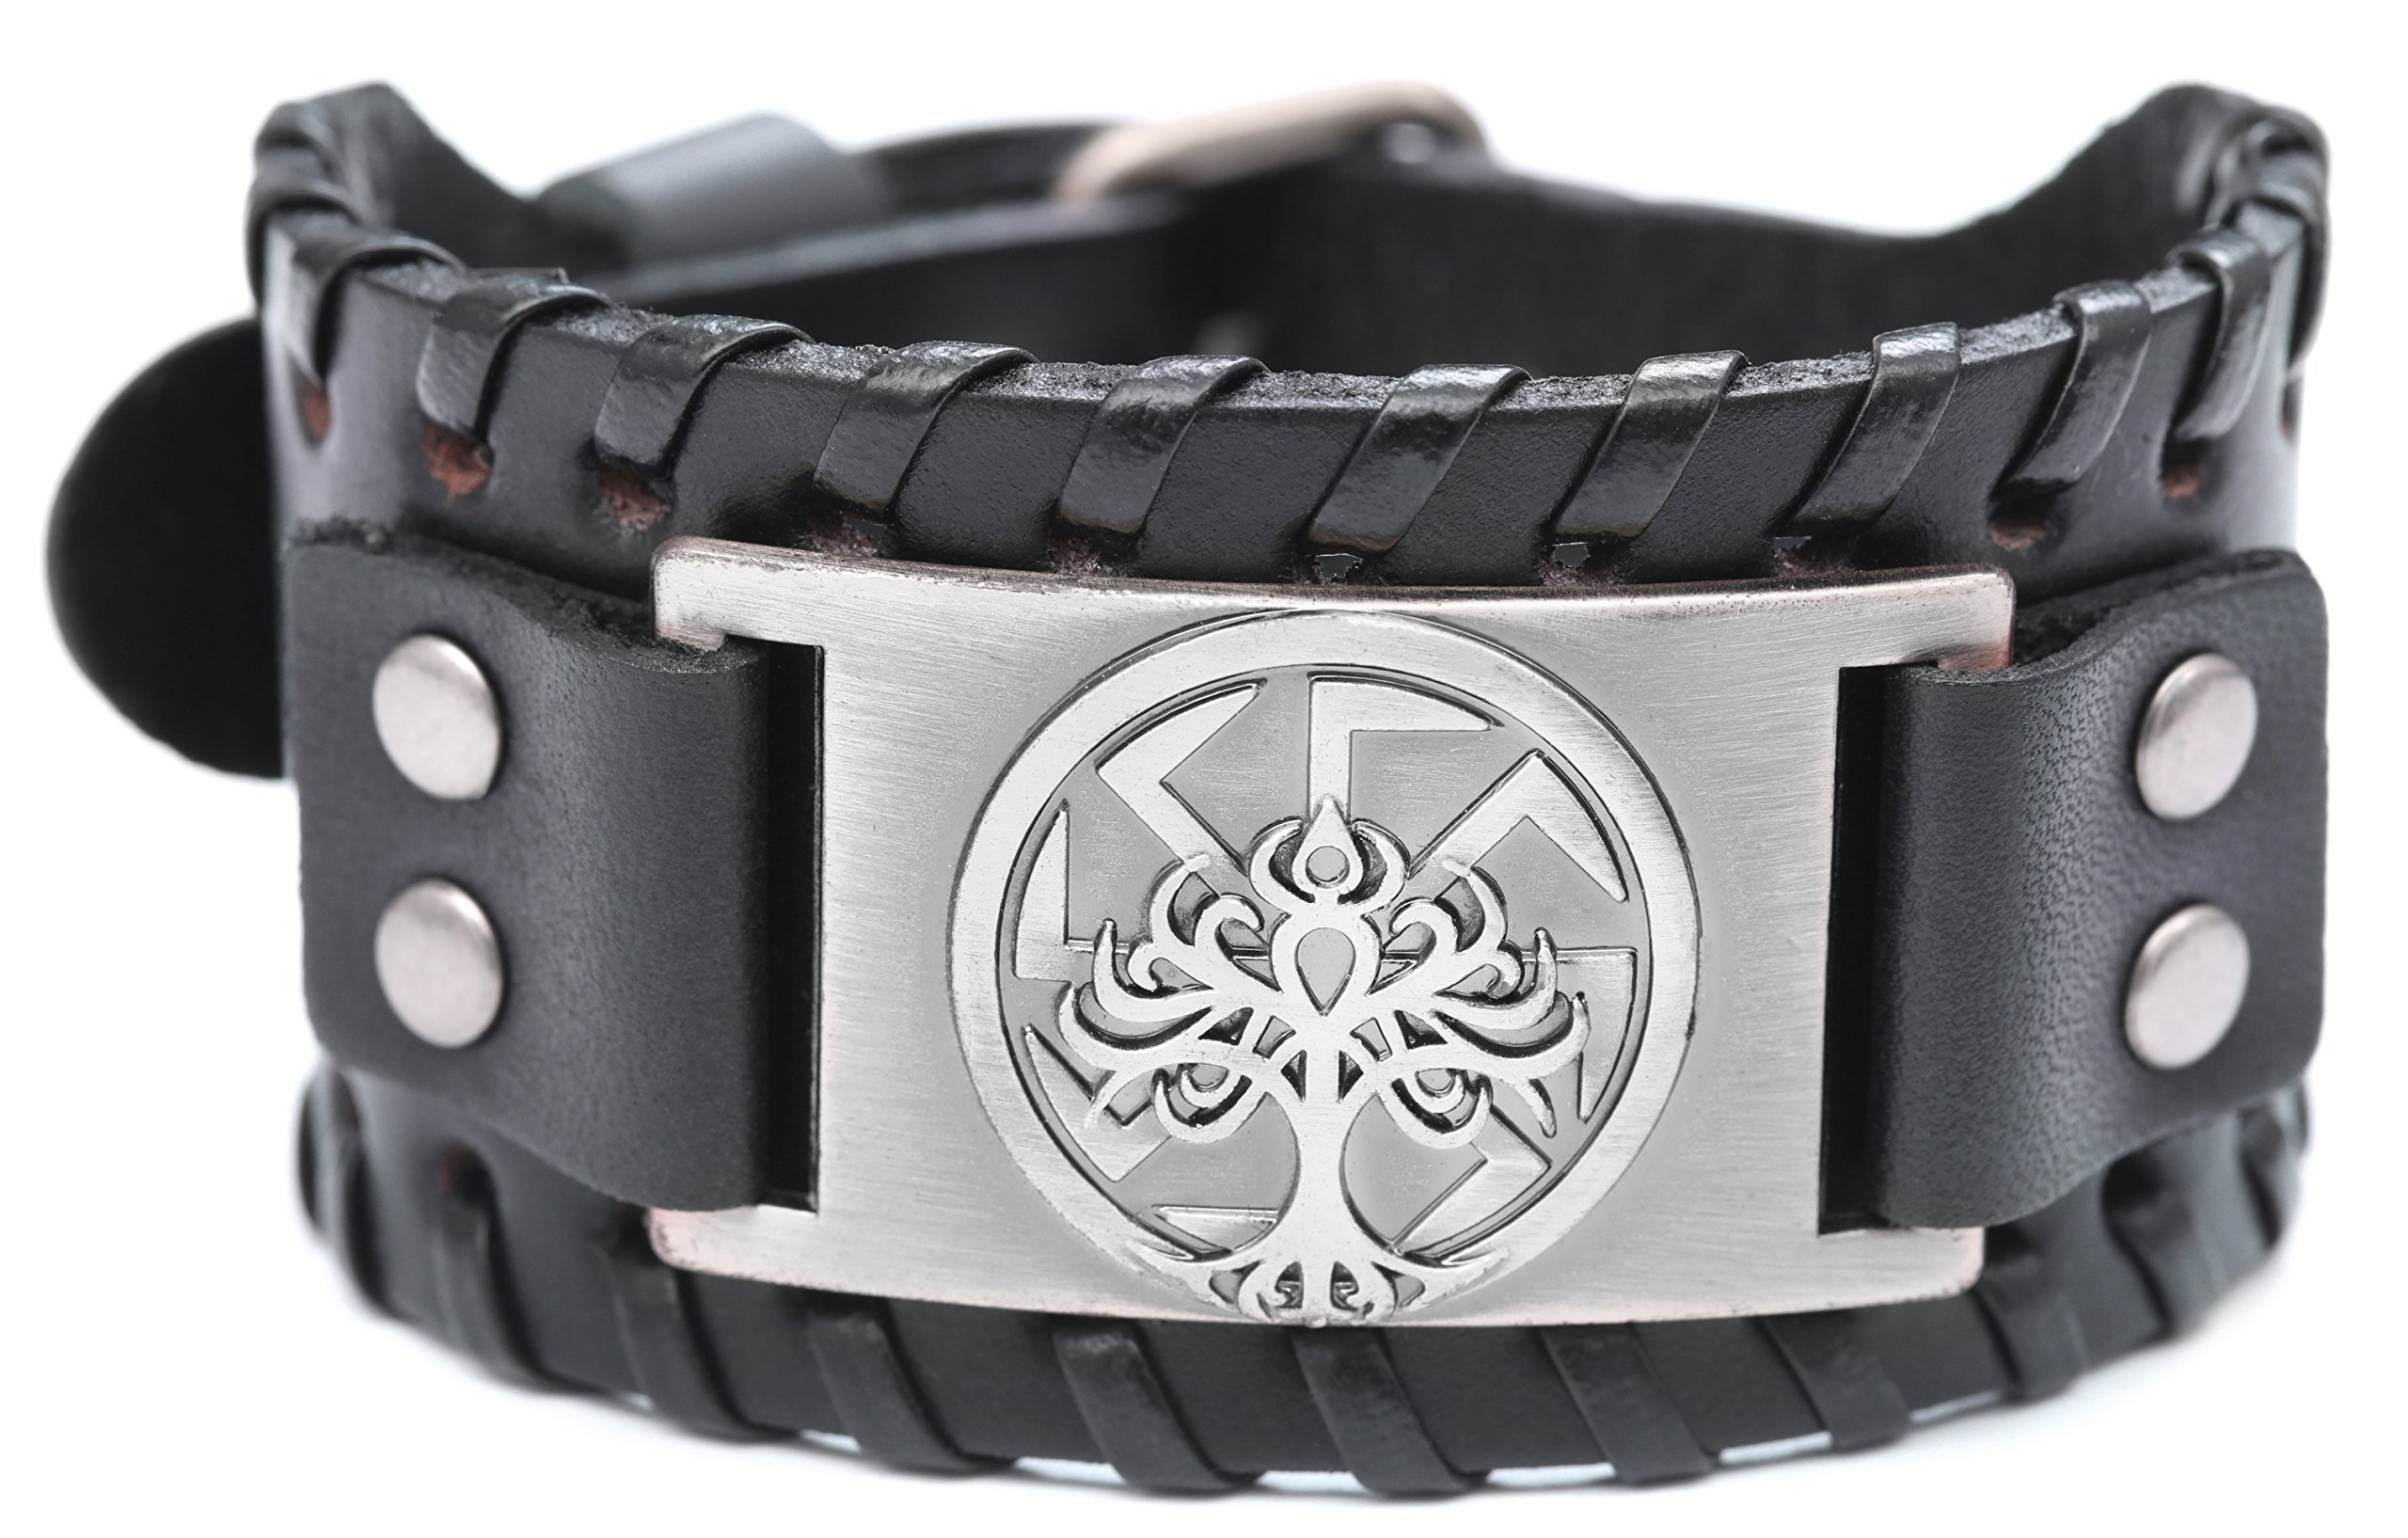 VASSAGO Vintage Norse Myth Tree of Life Yggdrasil Slavic Kolovrat Symbol Sun Wheel Amulet Cuff New-style Leather Bracelet (Black Leather, Antique Silver)